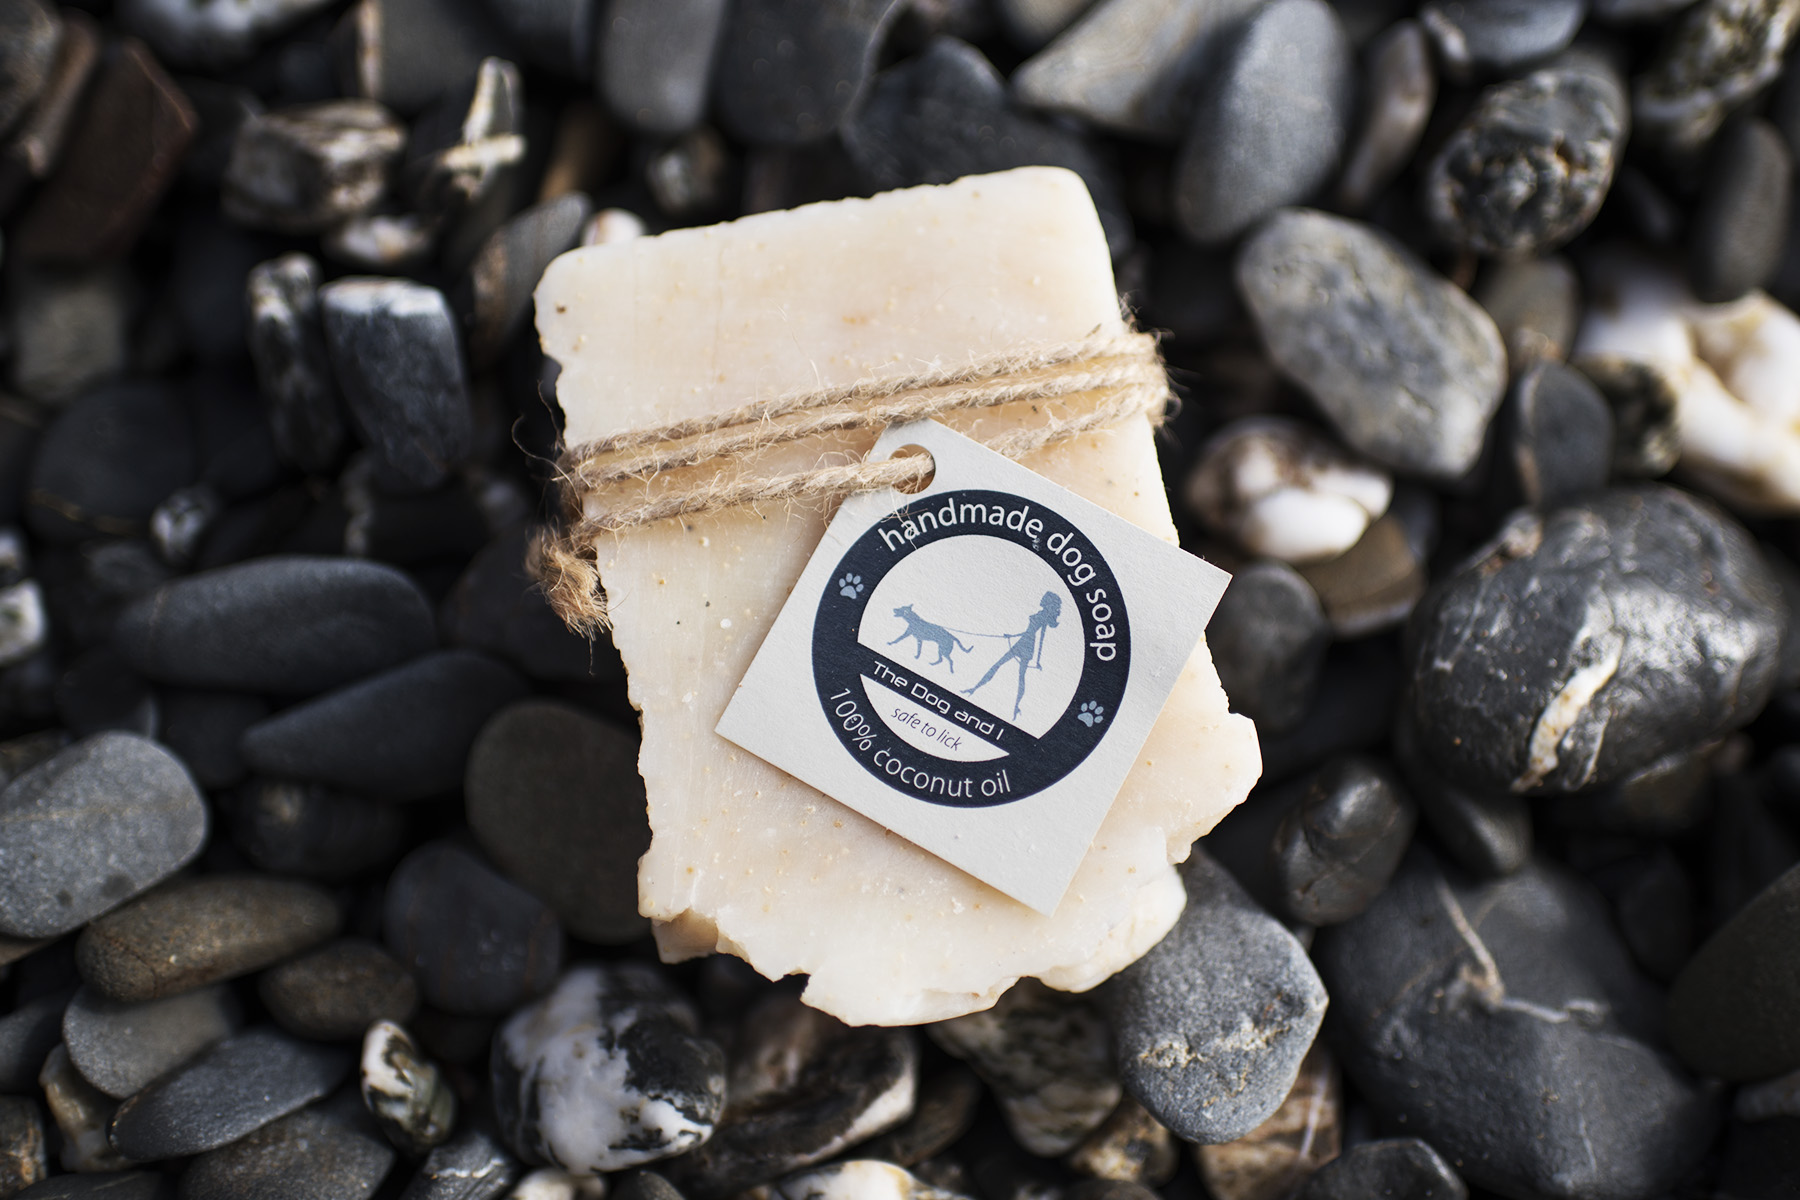 The Dog and I Plastic Free Soap | The Cornish Dog